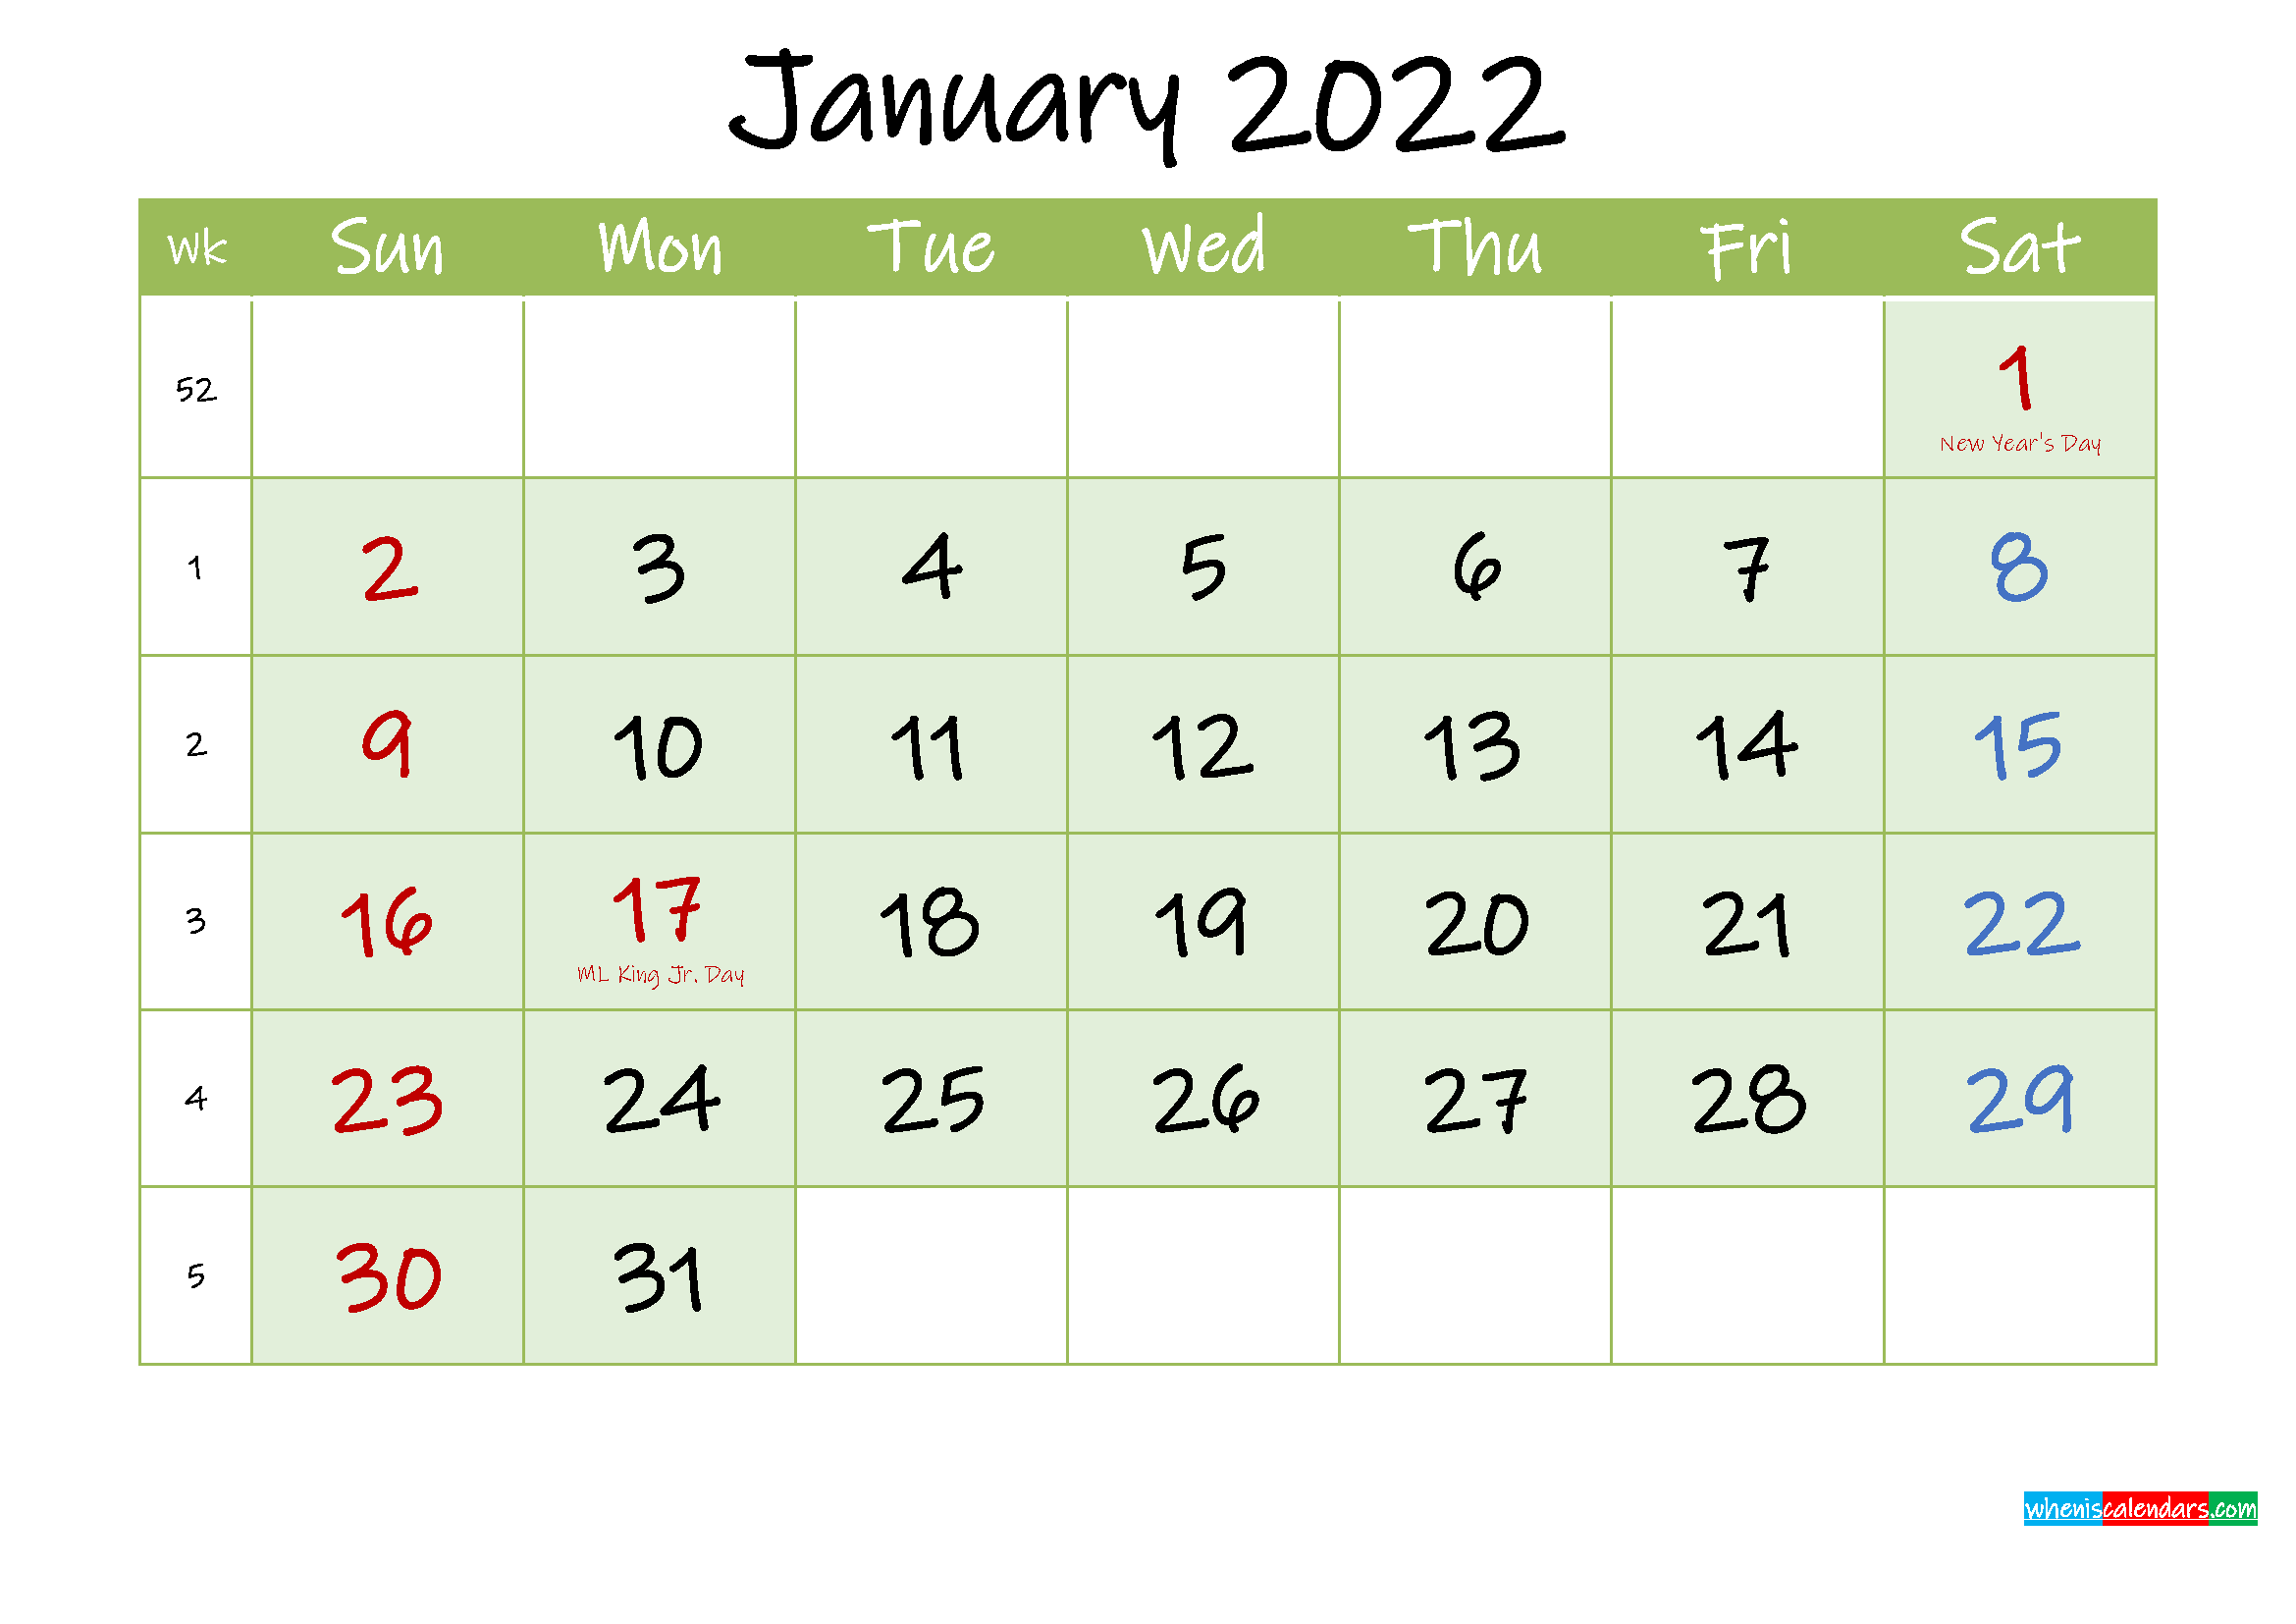 January 2022 Free Printable Calendar - Template Ink22M121 With 2022 January Calendar With Holidays